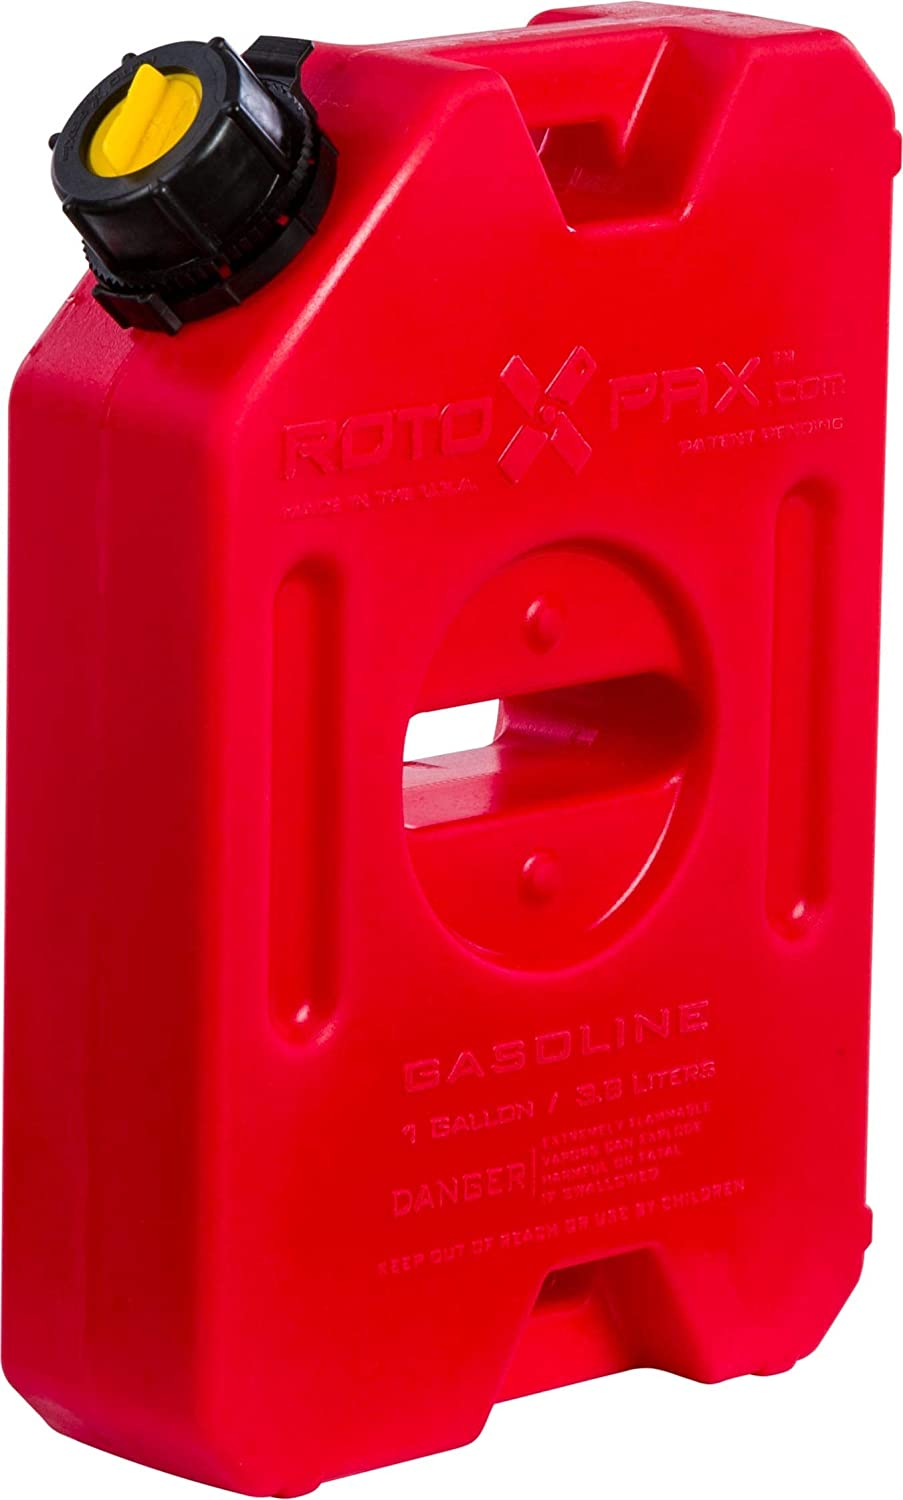 1 Gallon Capacity RotopaX RX-1G Gasoline Pack 1 Gallon Carb Compliant